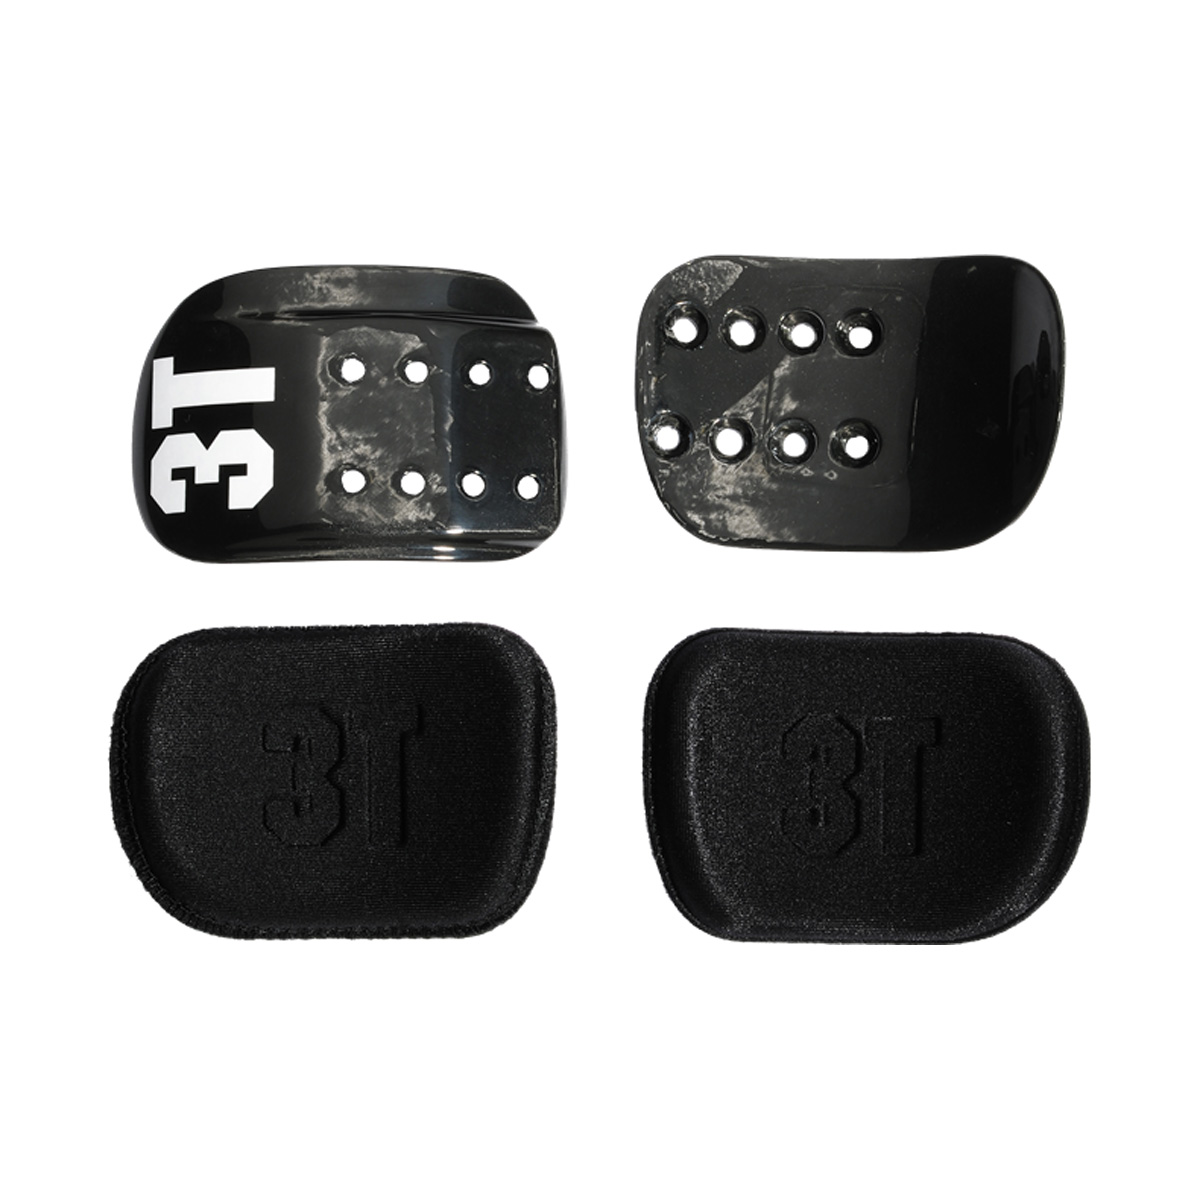 3T Brezza Bicycle Aerobar Compact Carbon Cradle/Replacement Pad Kit - 20324100116101120